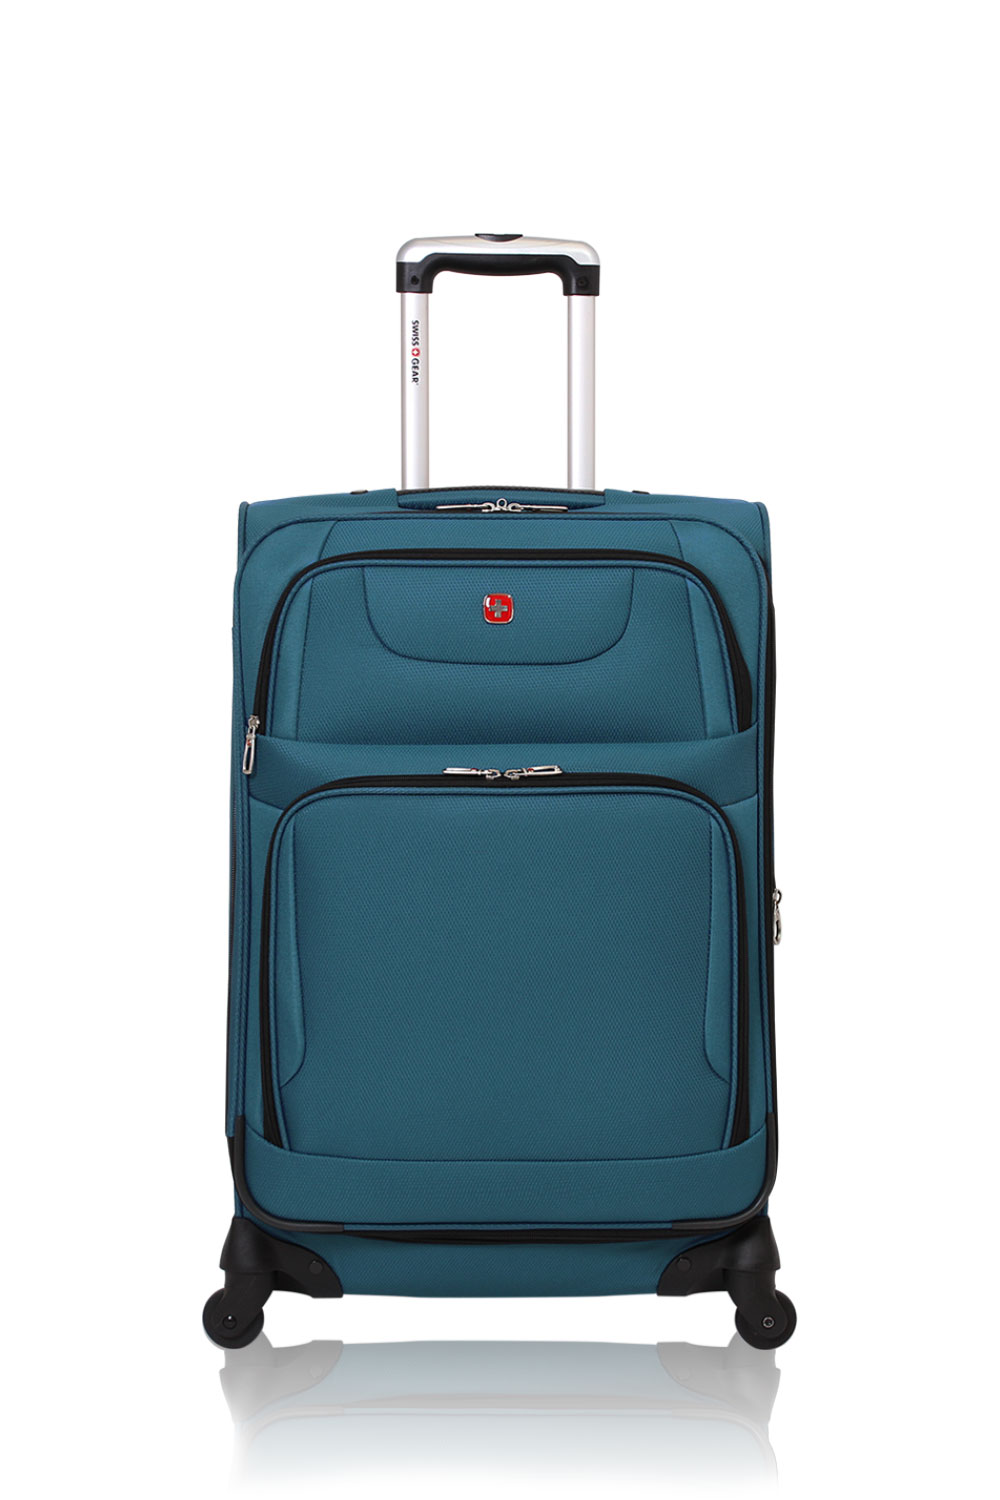 "SWISSGEAR 7297 24"" Expandable Spinner Luggage"